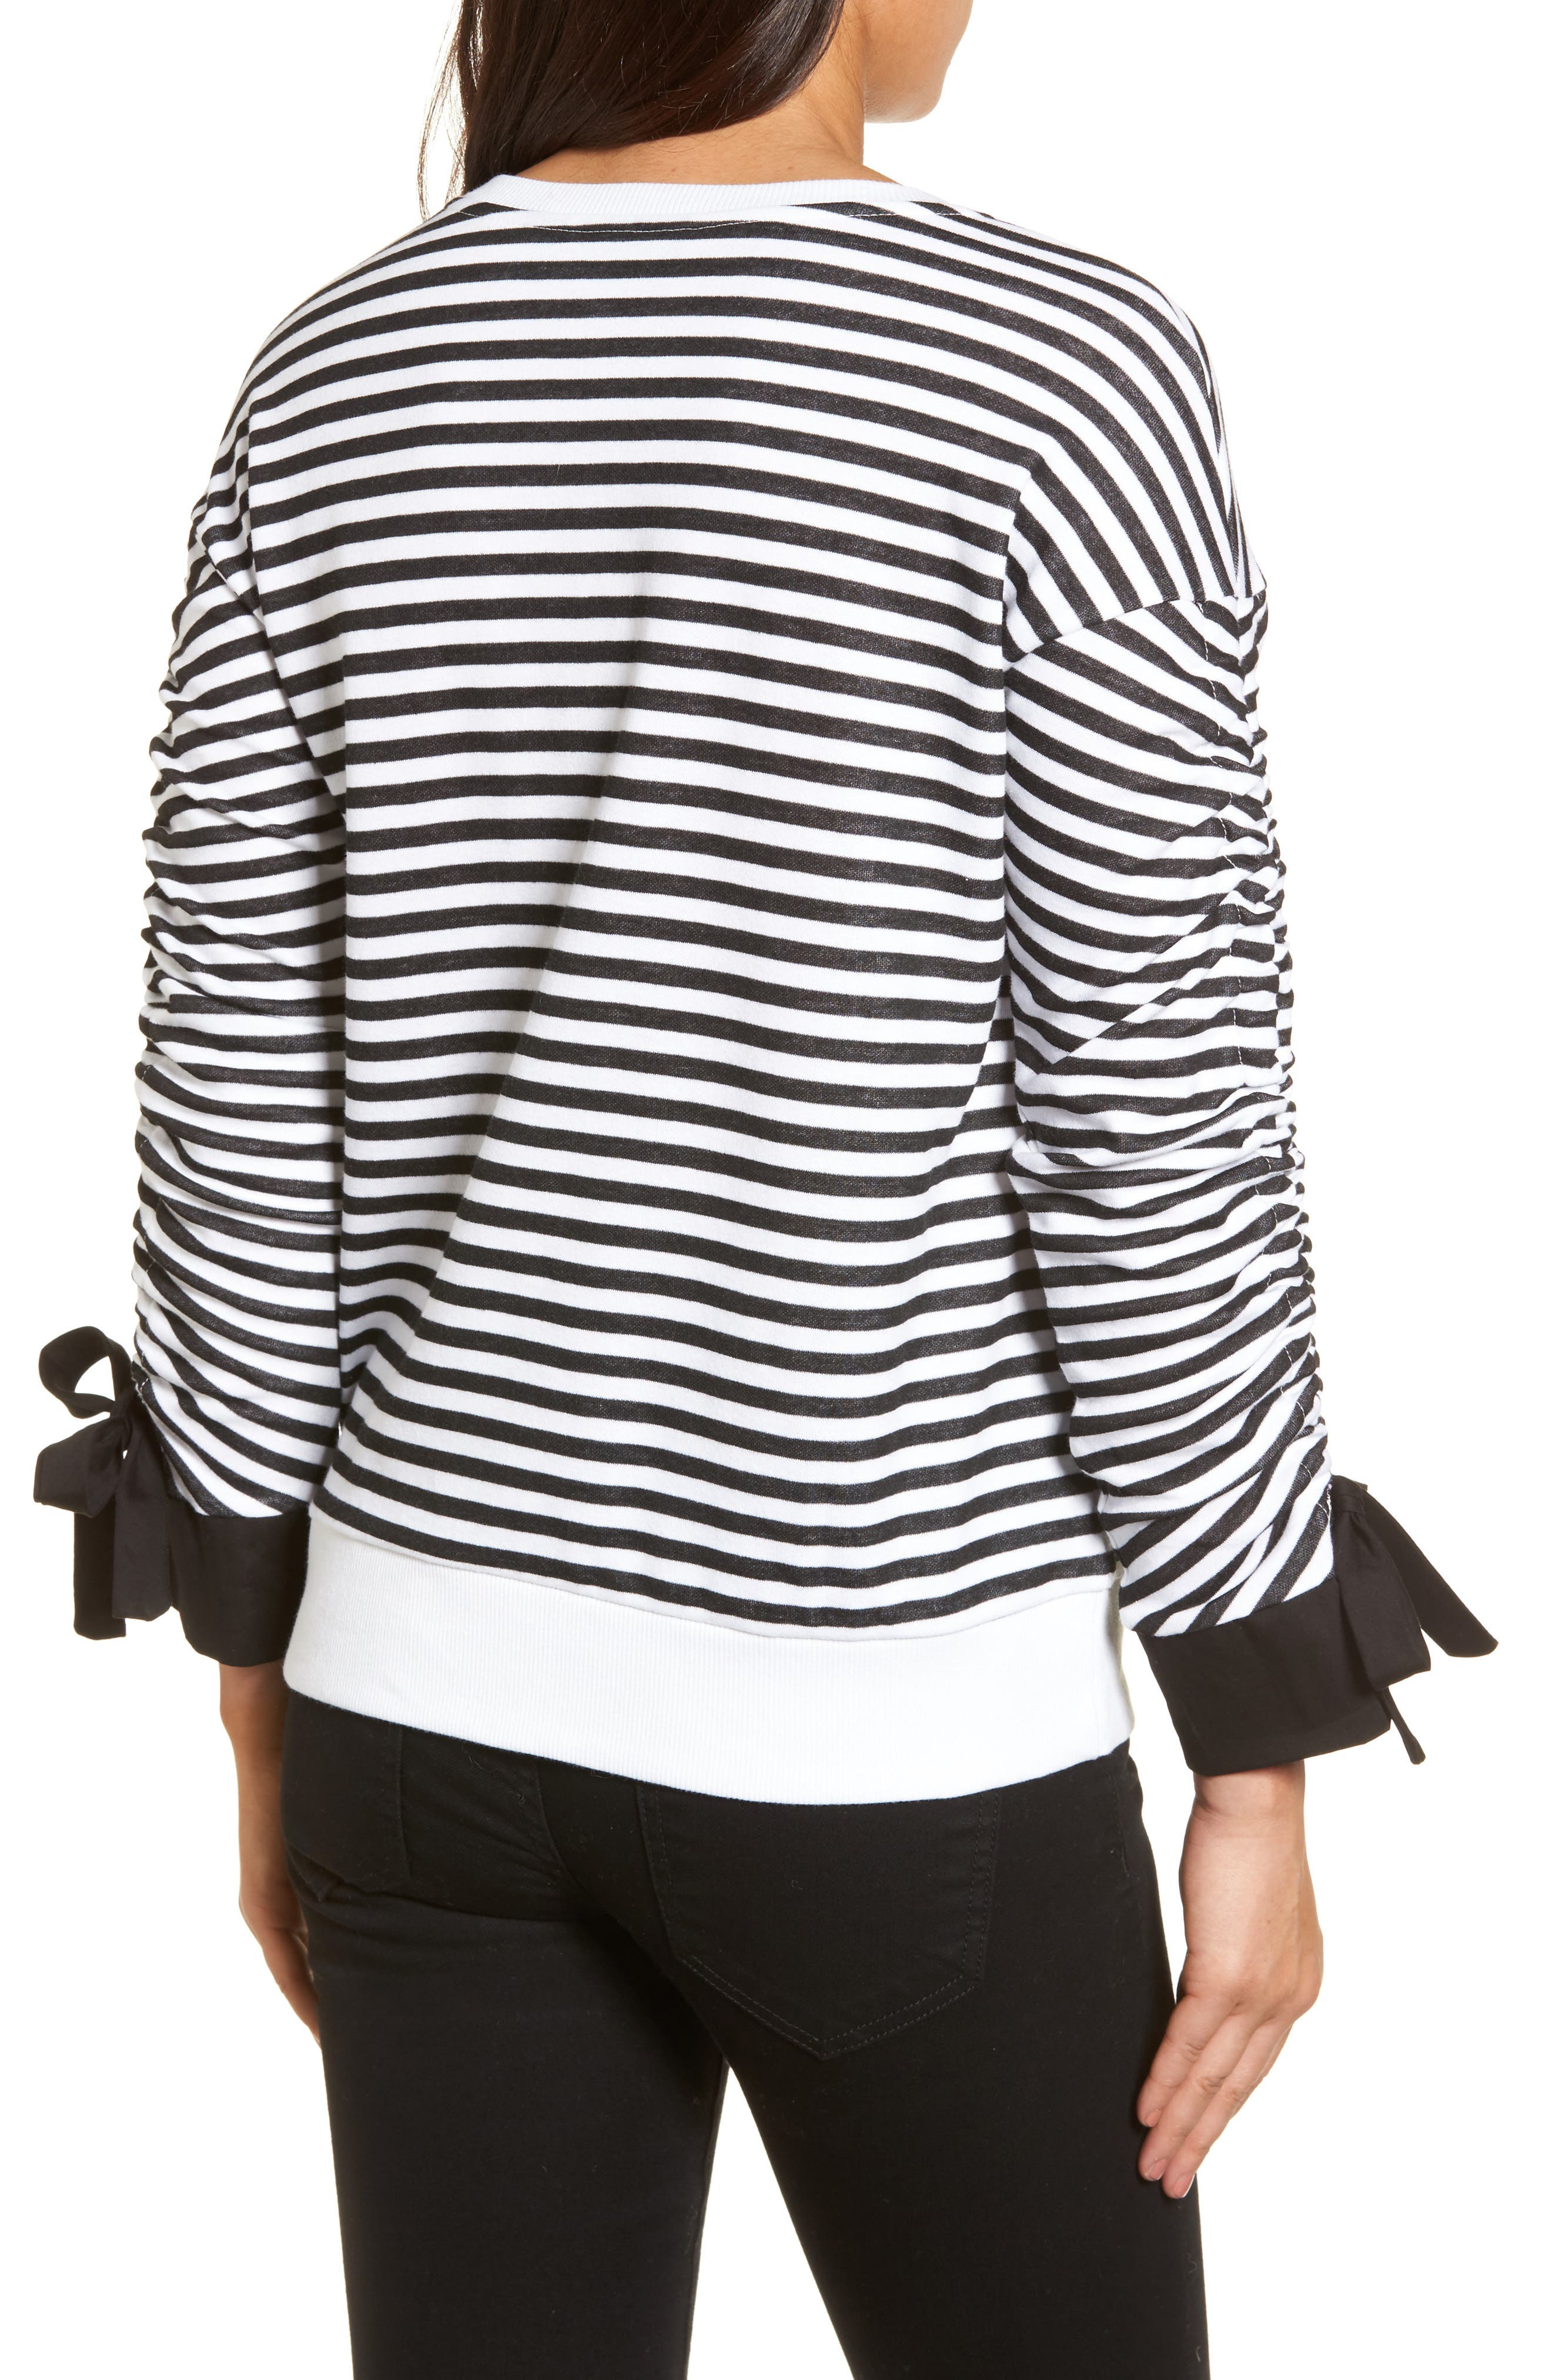 Ruched Sleeve Poplin Trim Sweatshirt,                             Alternate thumbnail 2, color,                             Black- White Stripe